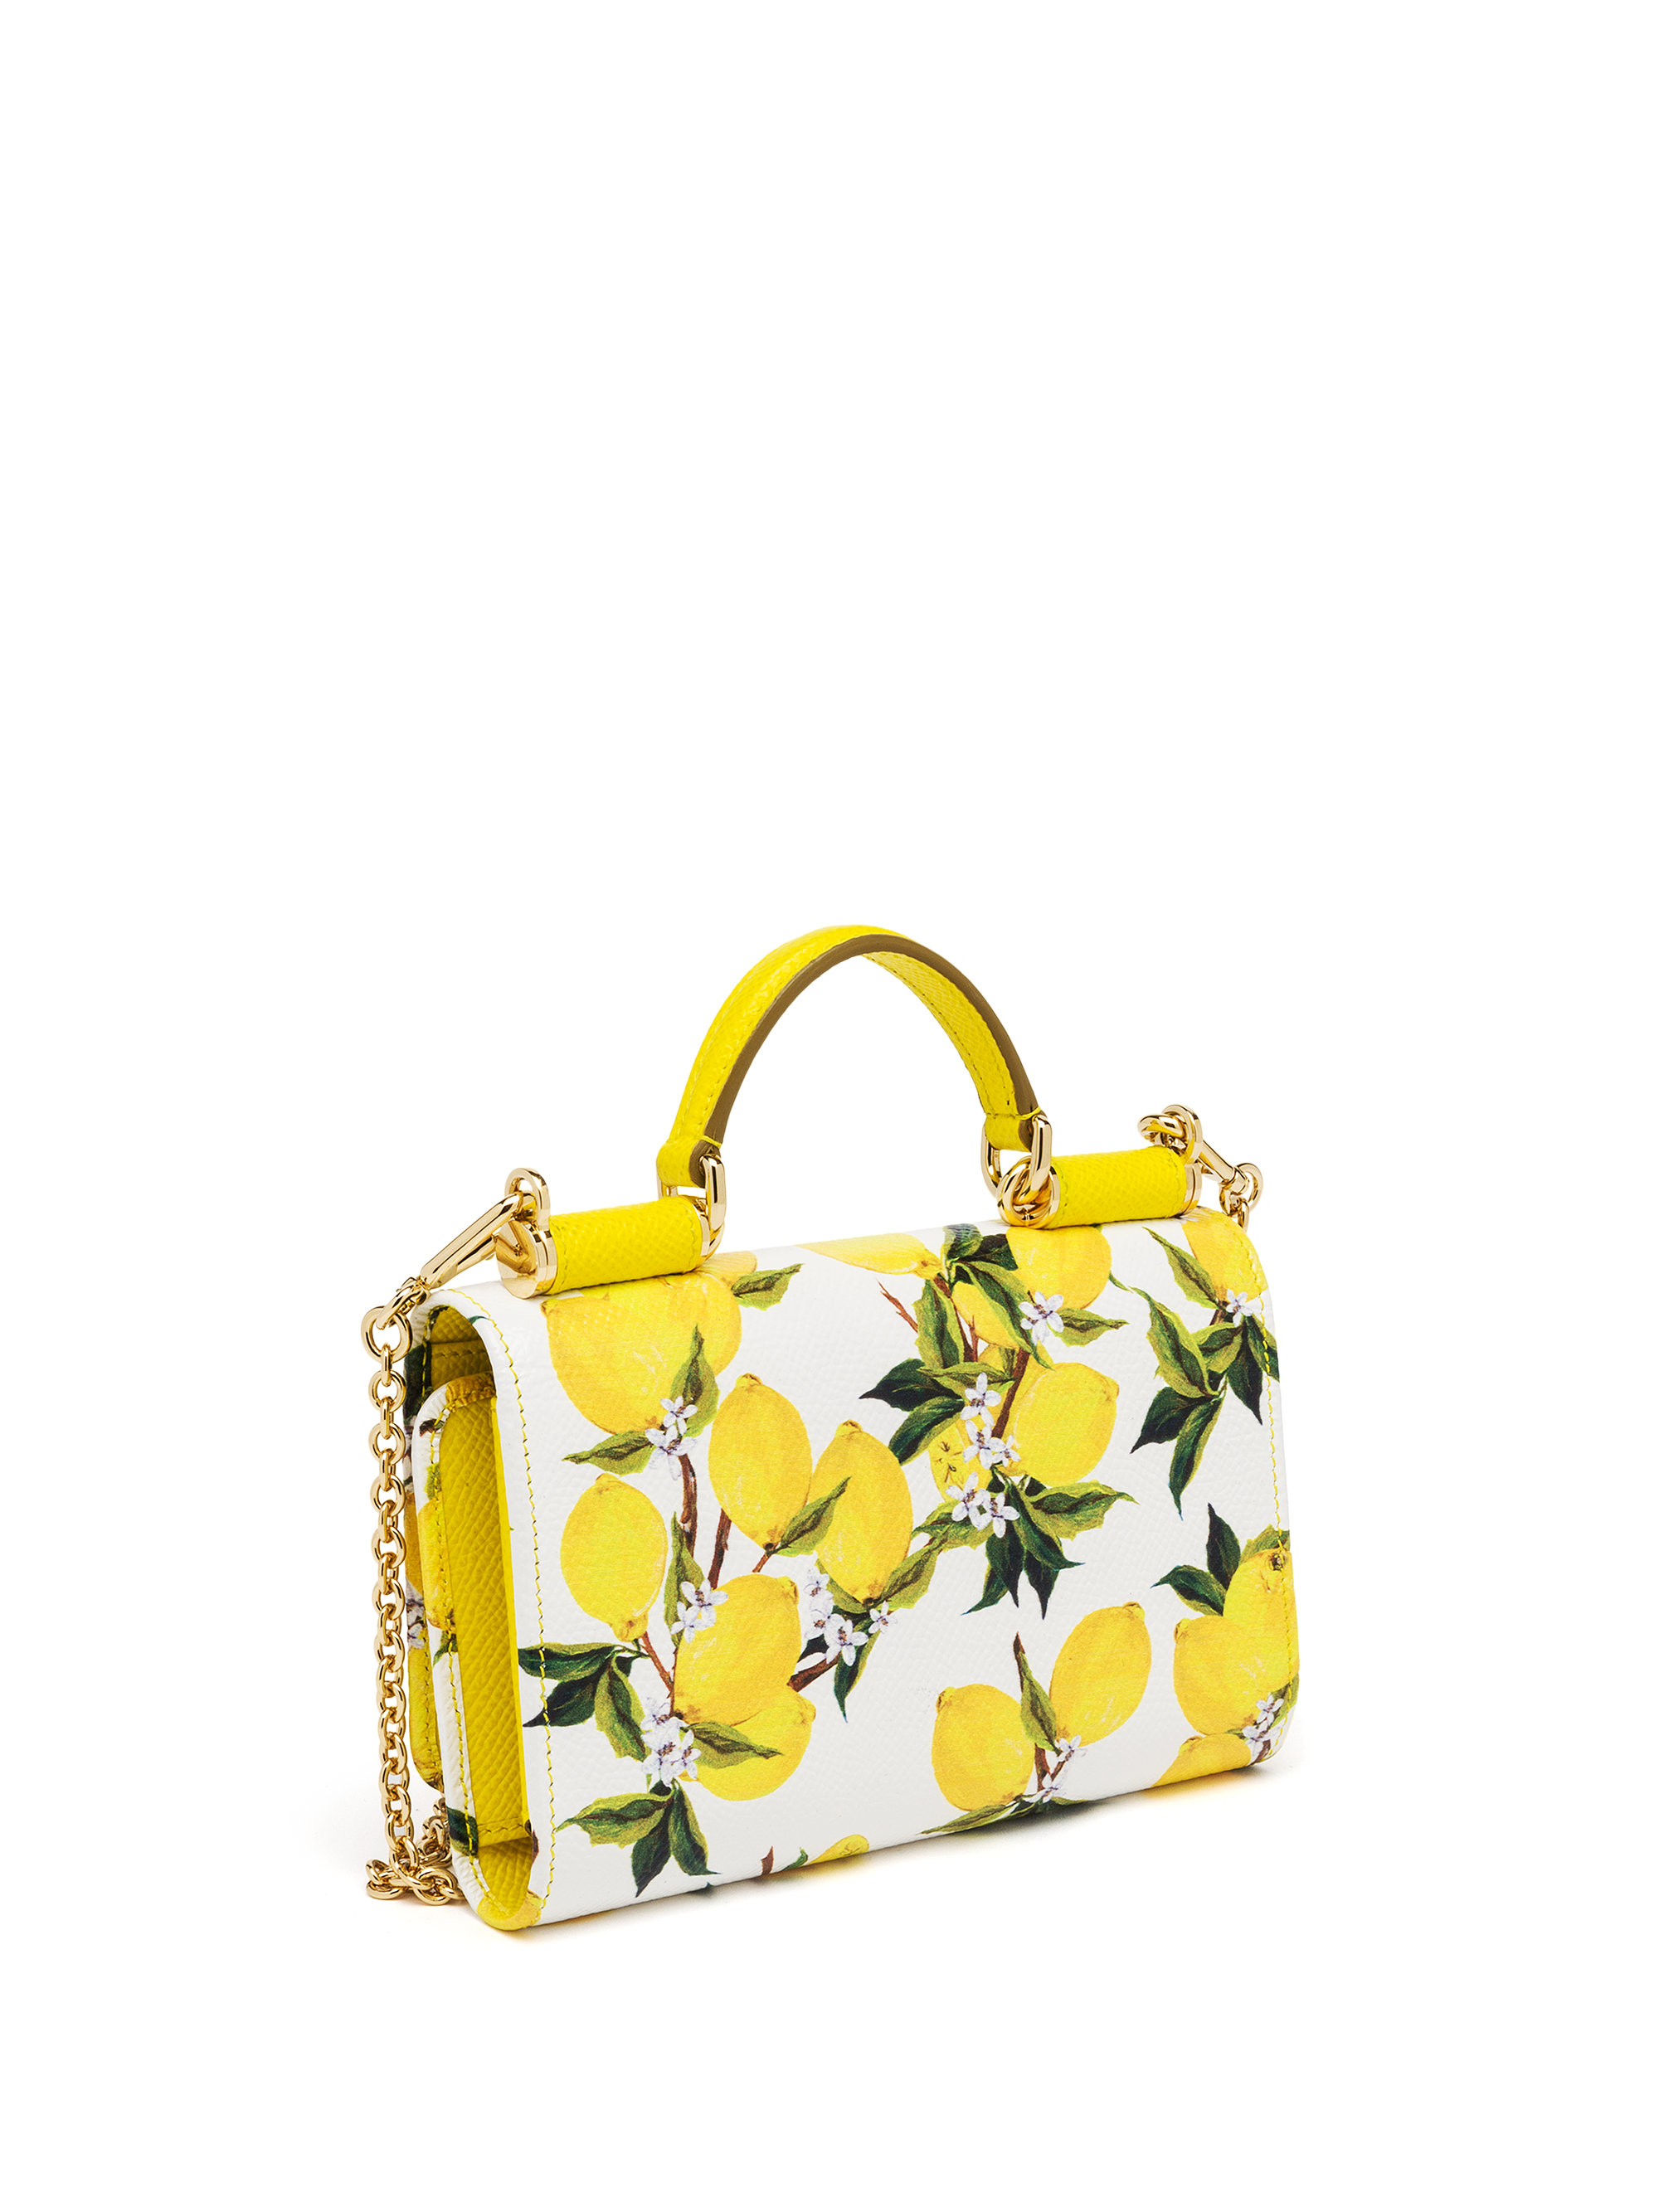 45b8ea3101 Lyst - Dolce   Gabbana Lemon-print Textured Leather Smartphone Chain ...